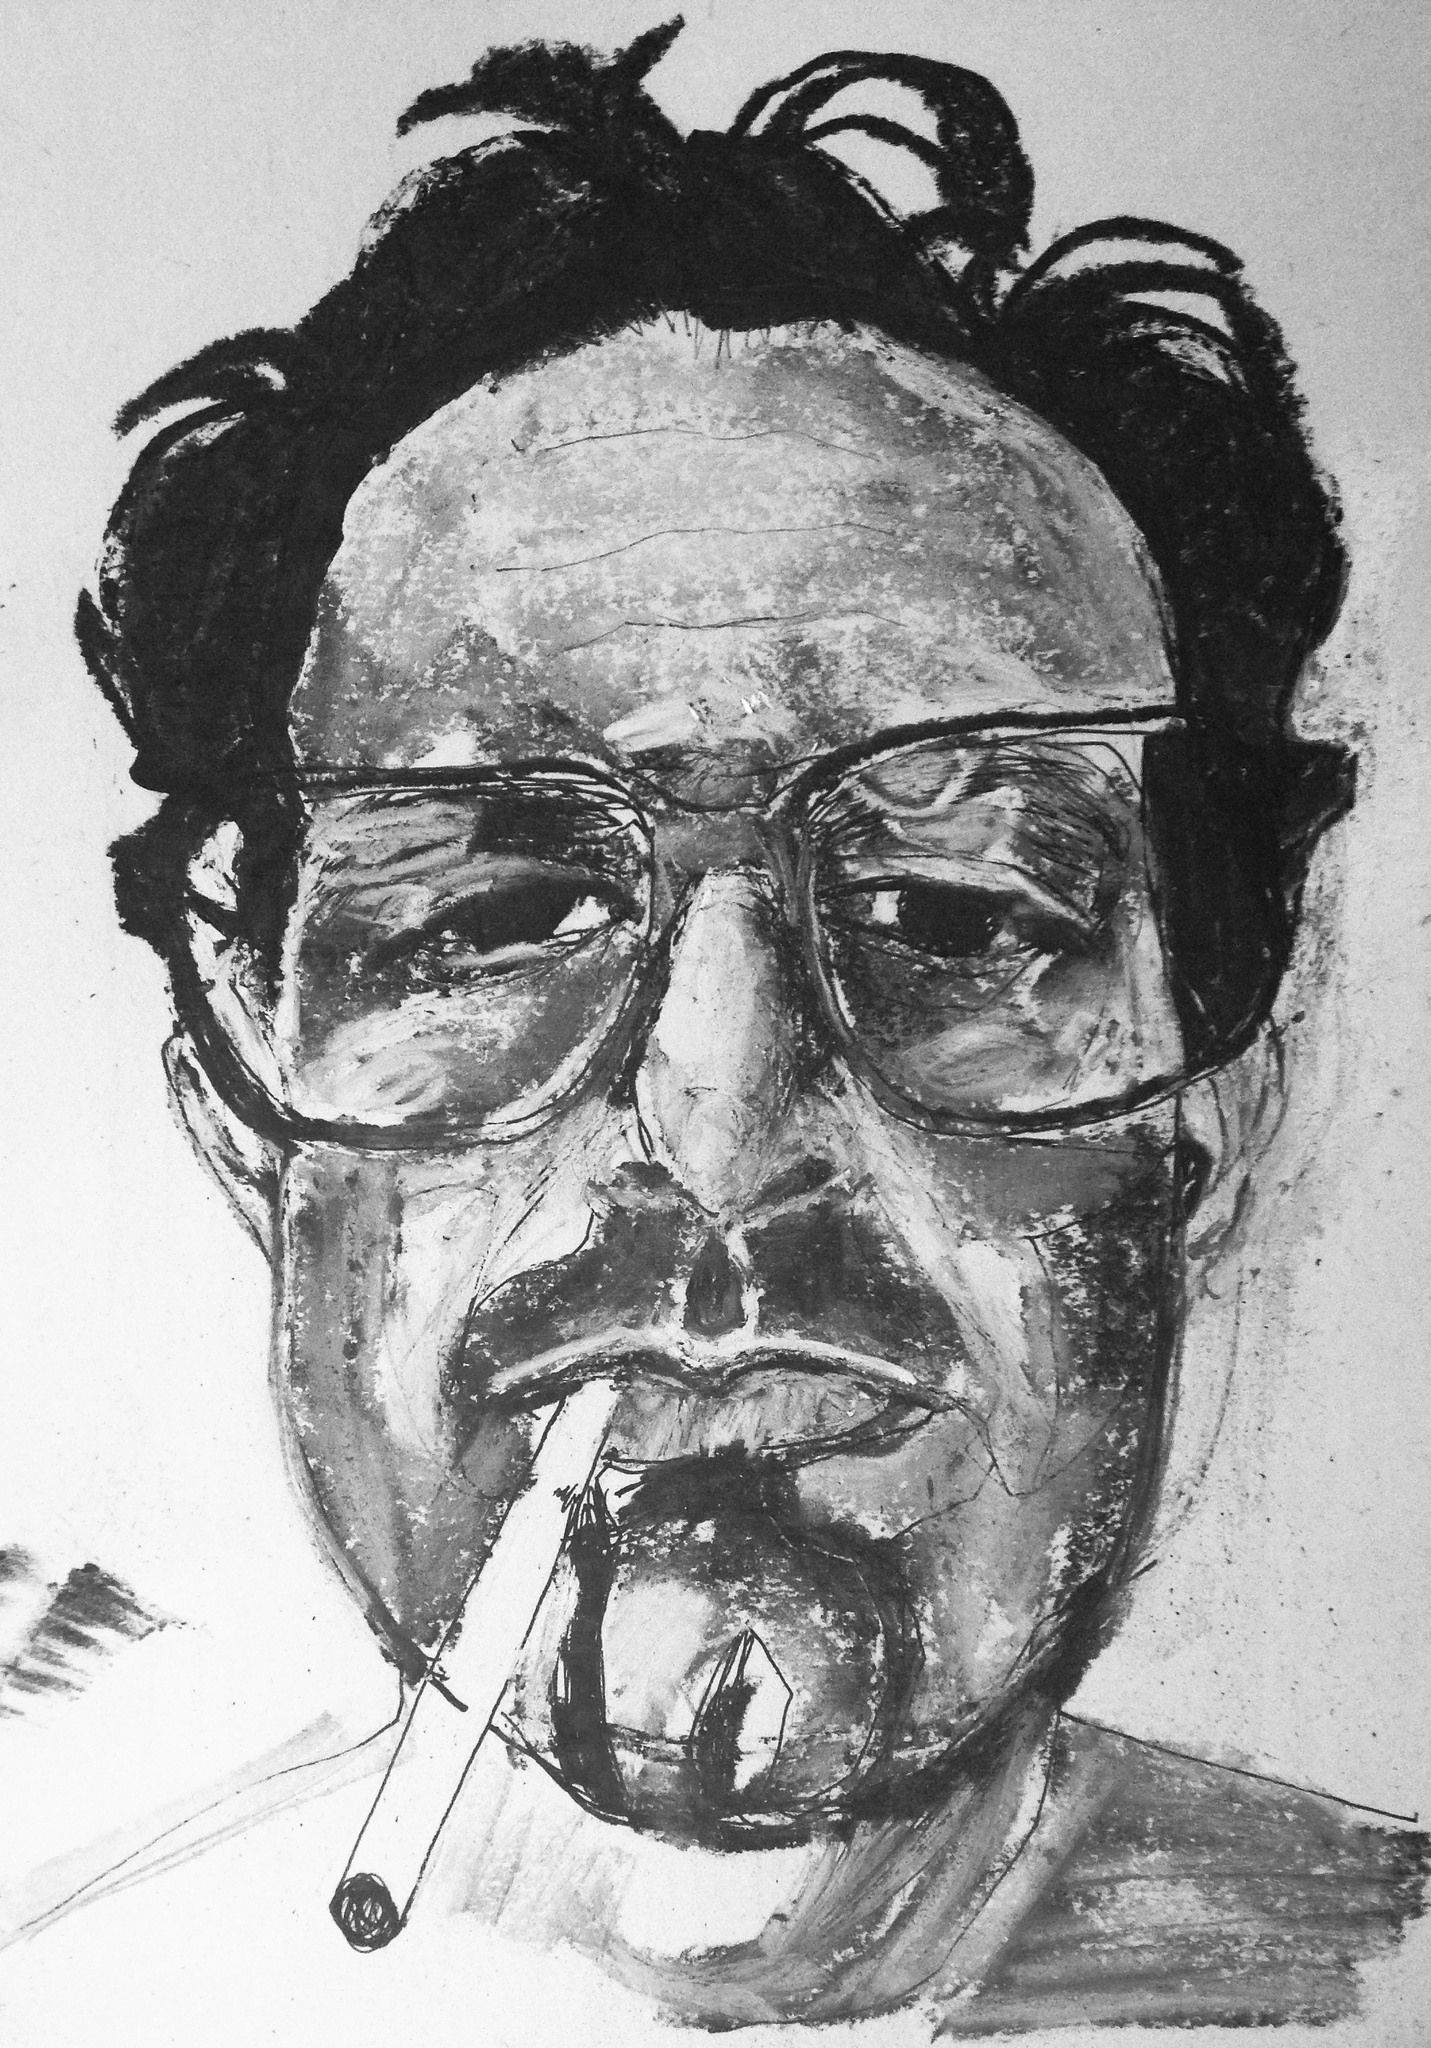 ink, chalk and charcoal on paper. a portrait of Richard Shulman ...